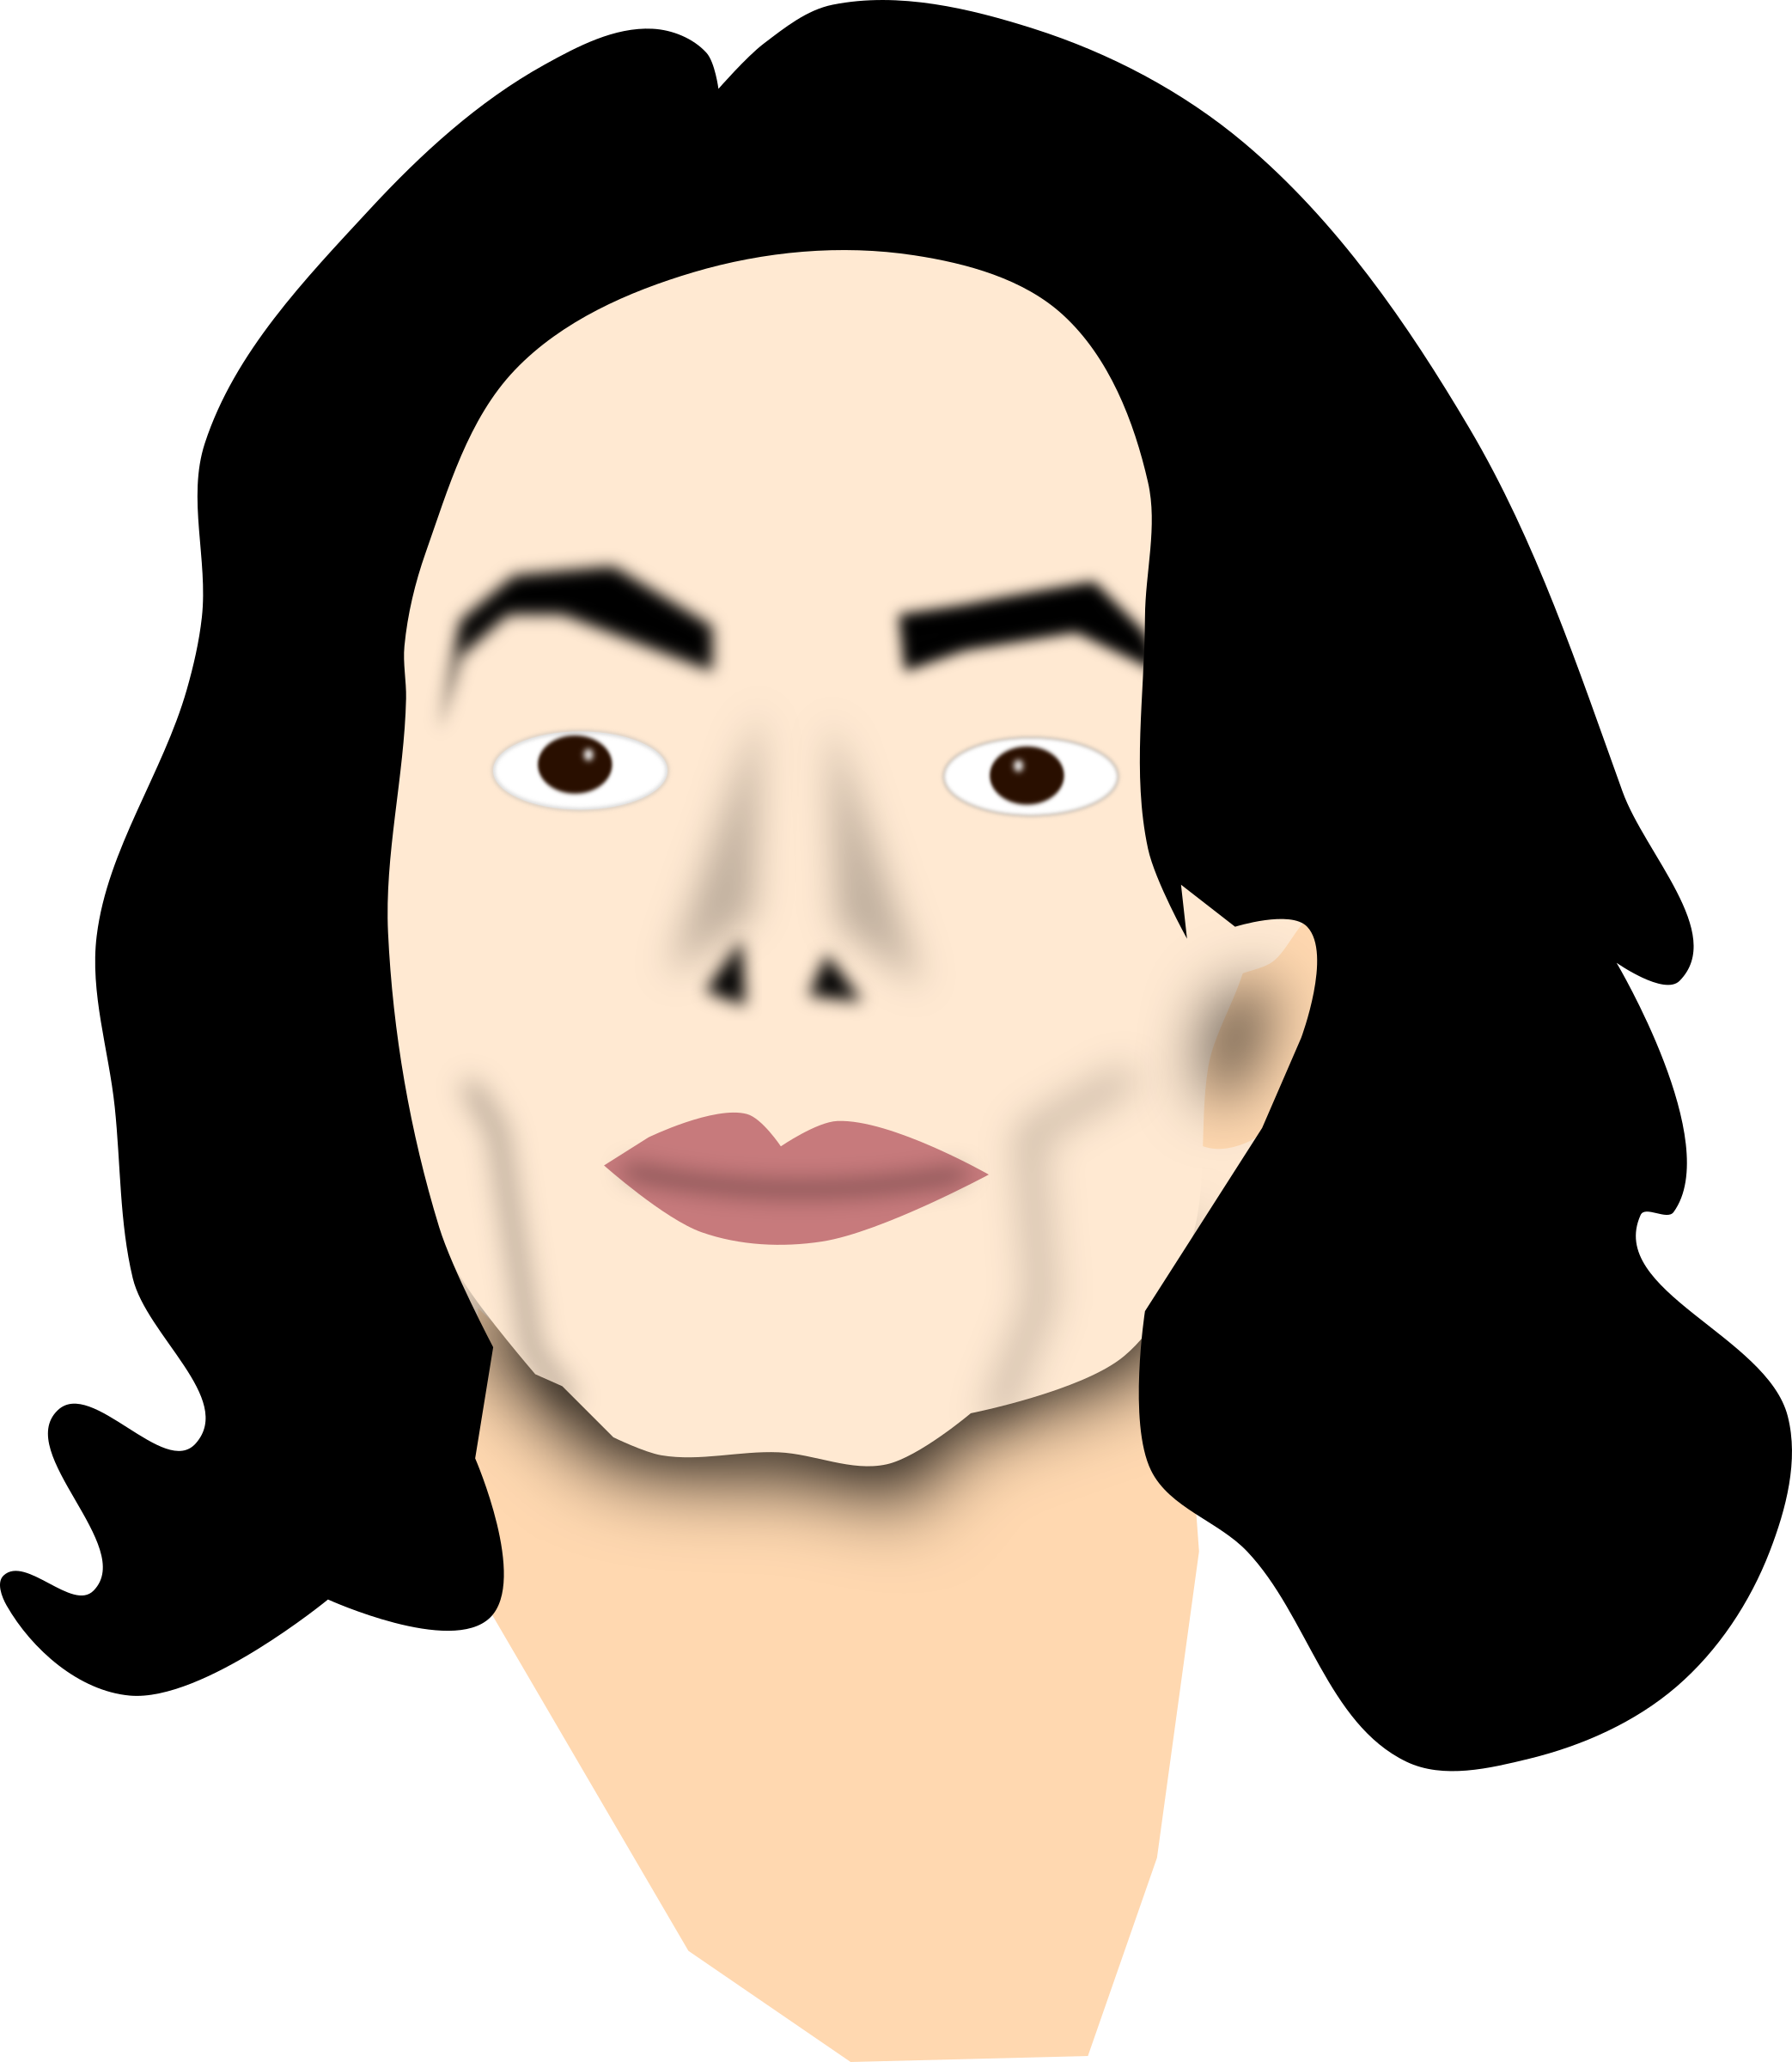 The rock face png. Michael jackson images free